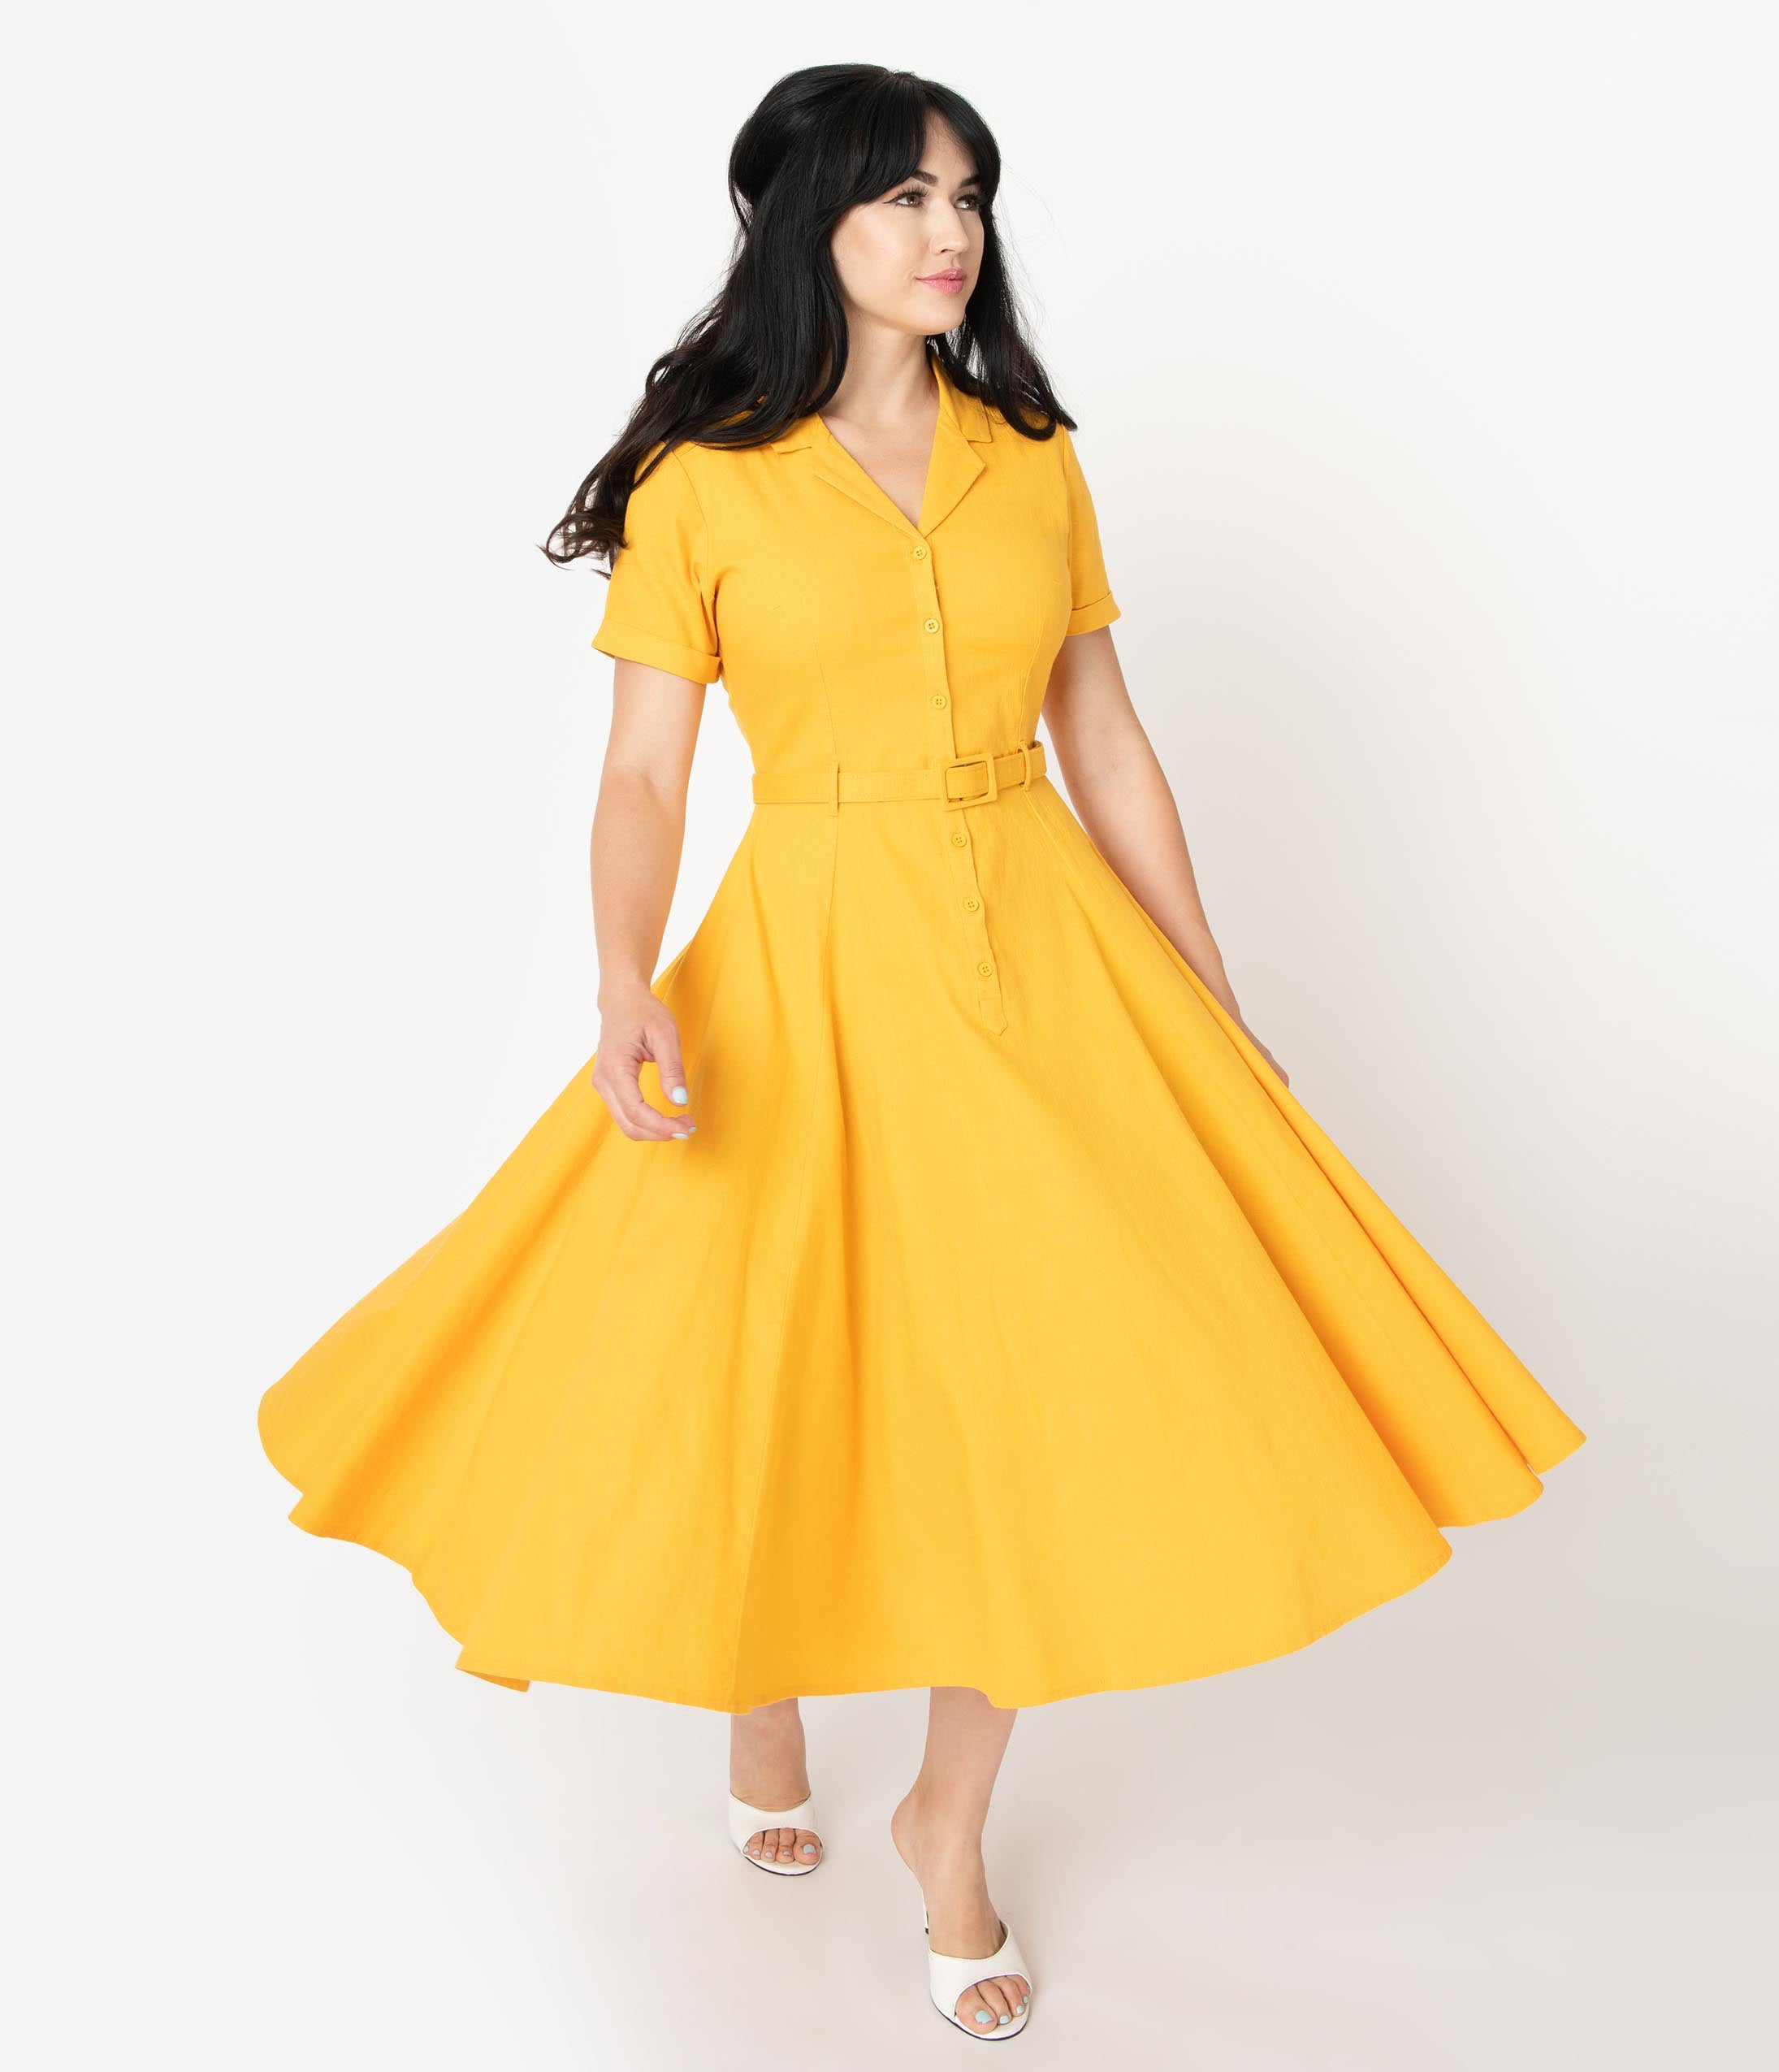 1950s Dresses, 50s Dresses | 1950s Style Dresses Collectif 1950S Mustard Yellow Cotton Caterina Swing Dress $68.00 AT vintagedancer.com